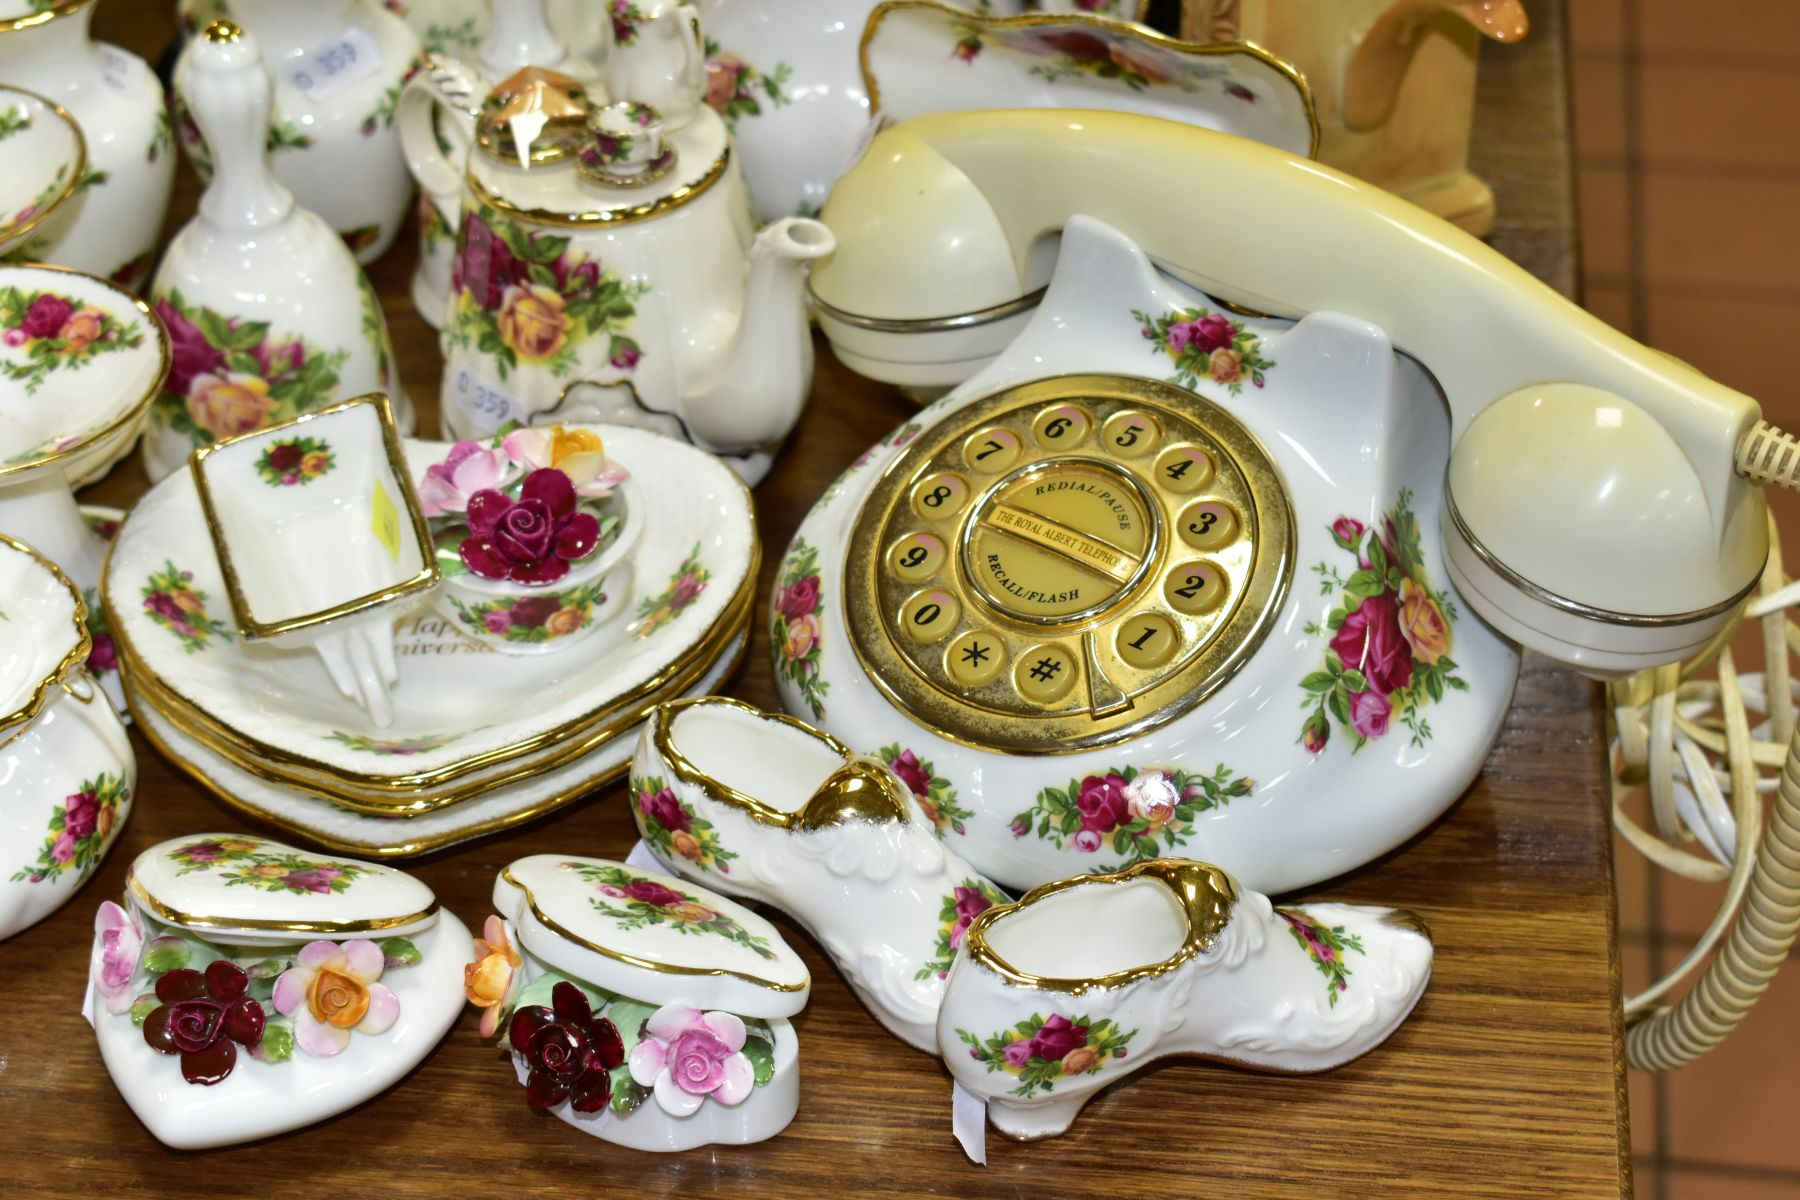 ROYAL ALBERT 'OLD COUNTRY ROSES' DINNER/TEA WARES, NOVELTY TEAPOTS AND TRINKETS, comprising two - Image 9 of 12